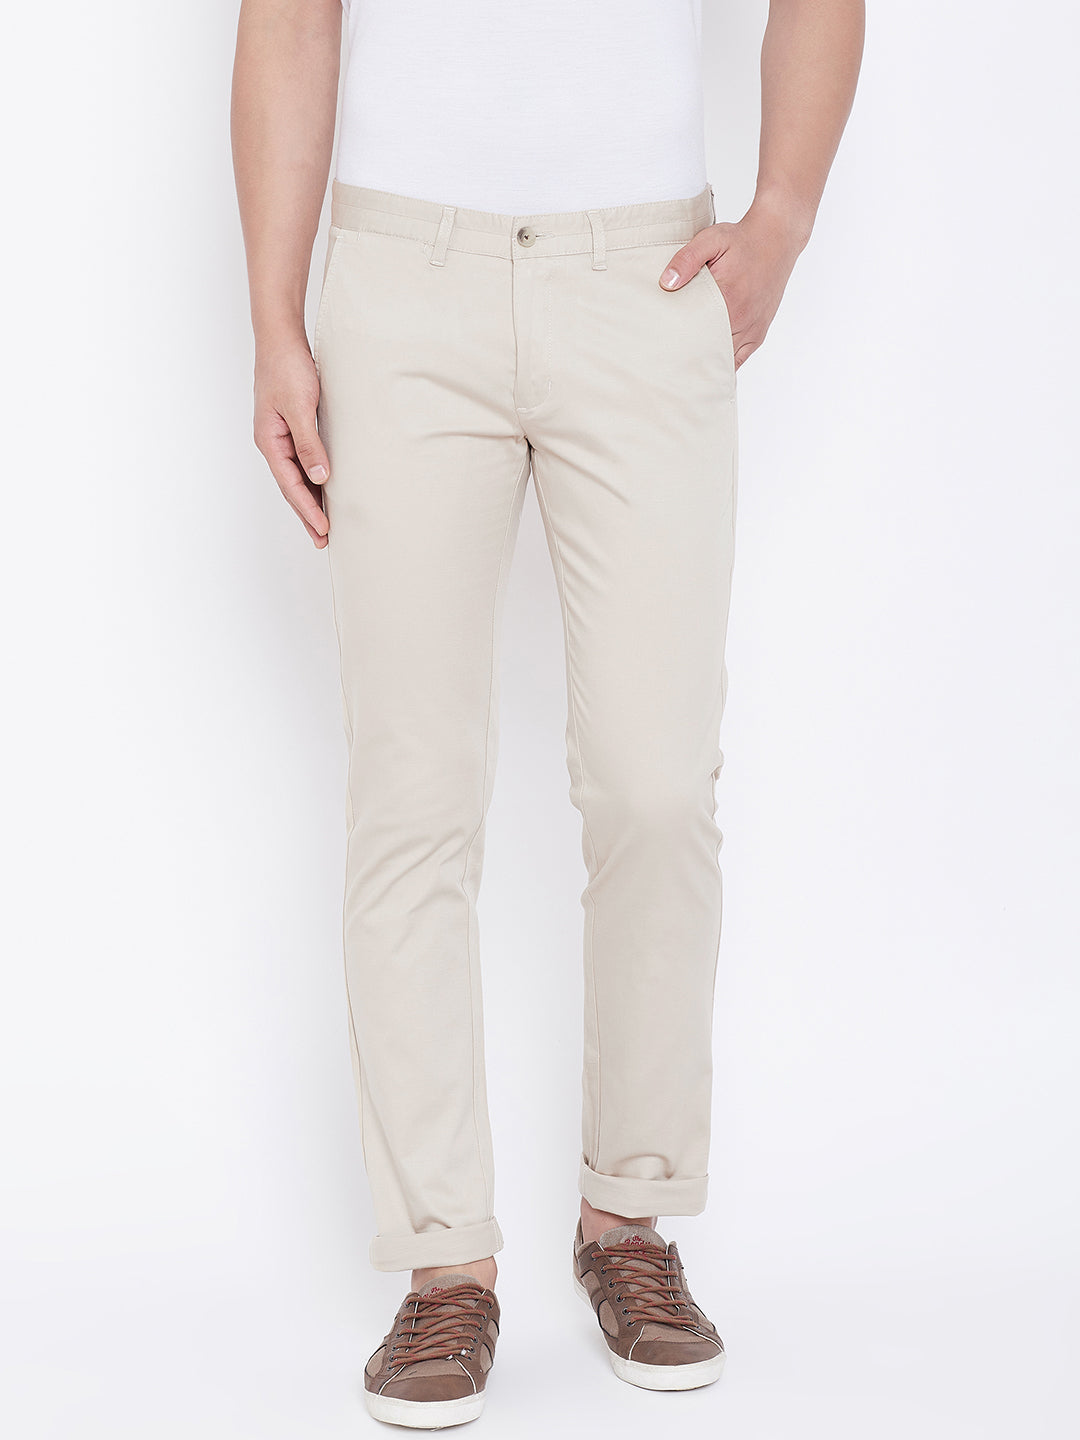 JUMP USA Men Cream Regular Fit Solid Trousers - JUMP USA